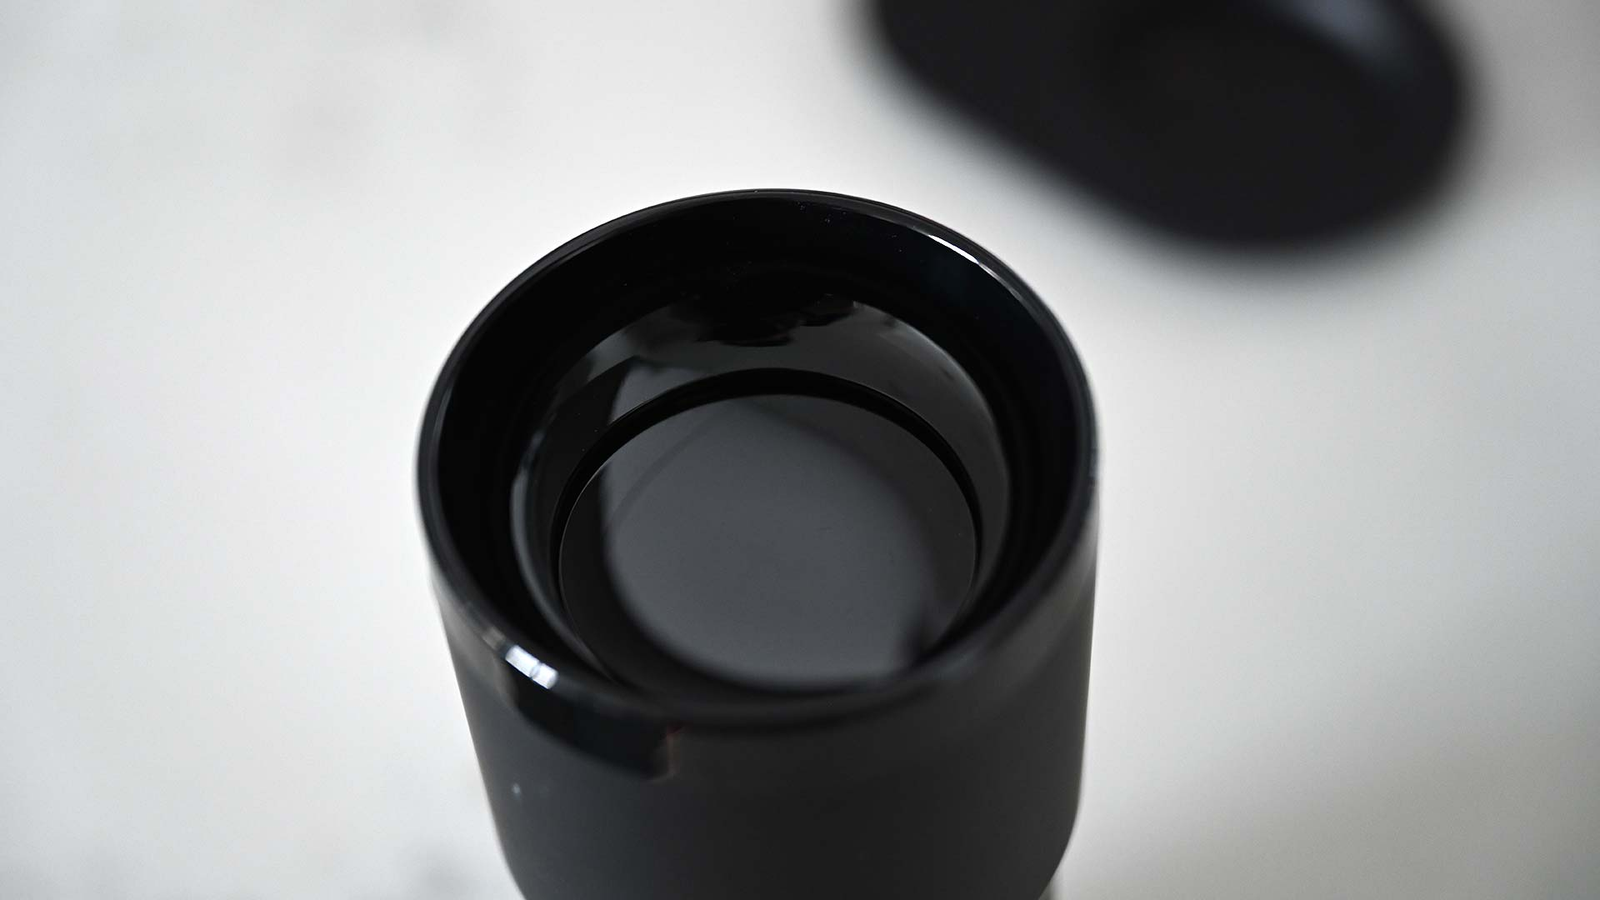 The Travel Mug's lid is surprisingly secure, but I still wouldn't just toss the thing in a bag if it's full of liquid.